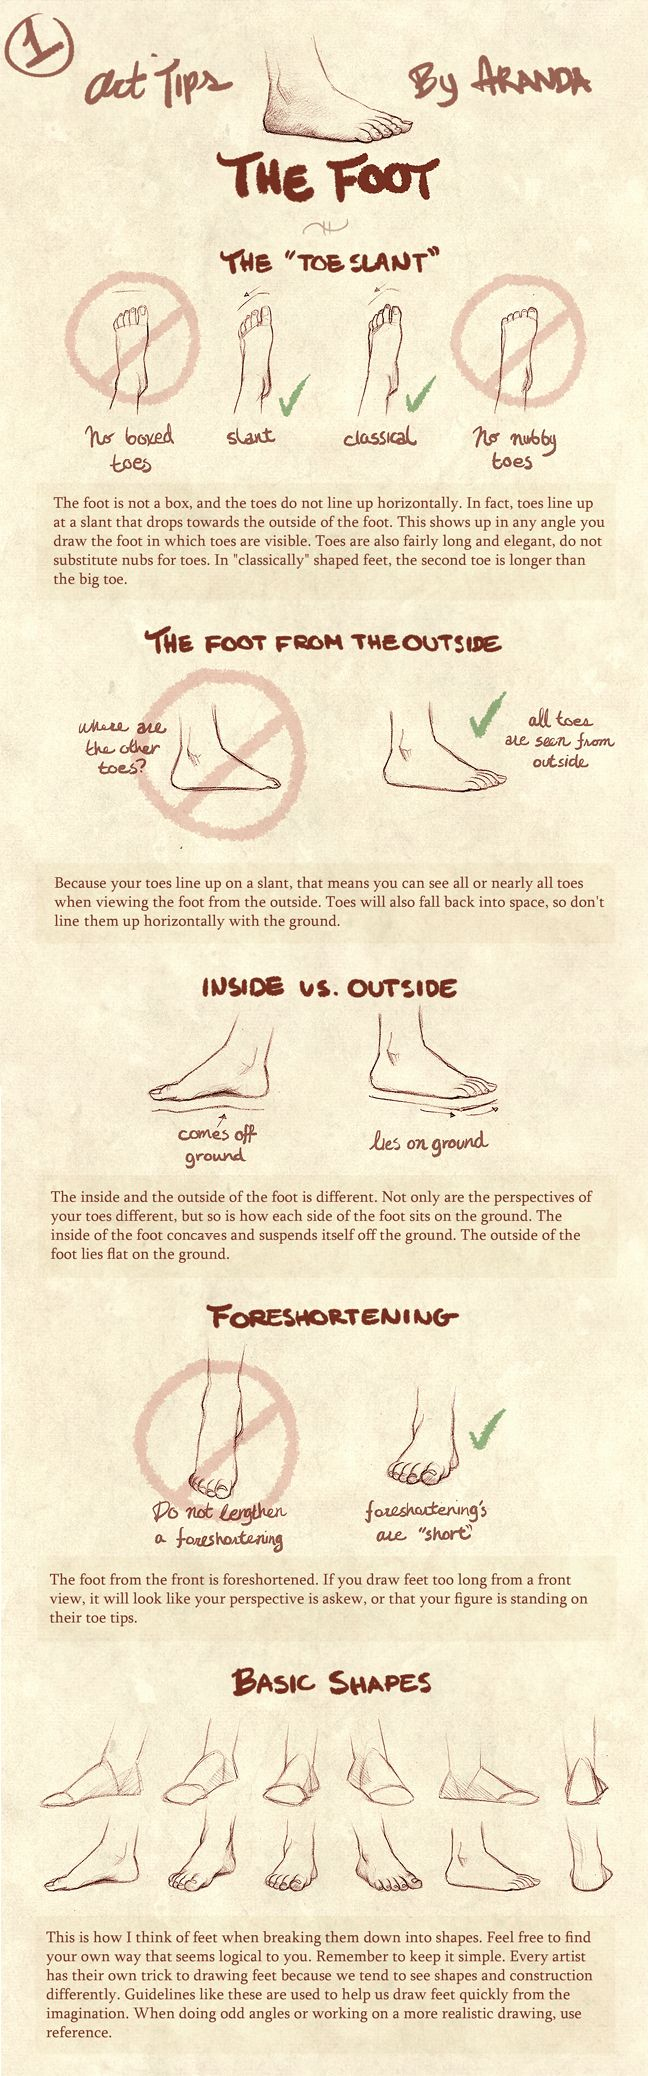 Tutorial/tips on drawing feet.